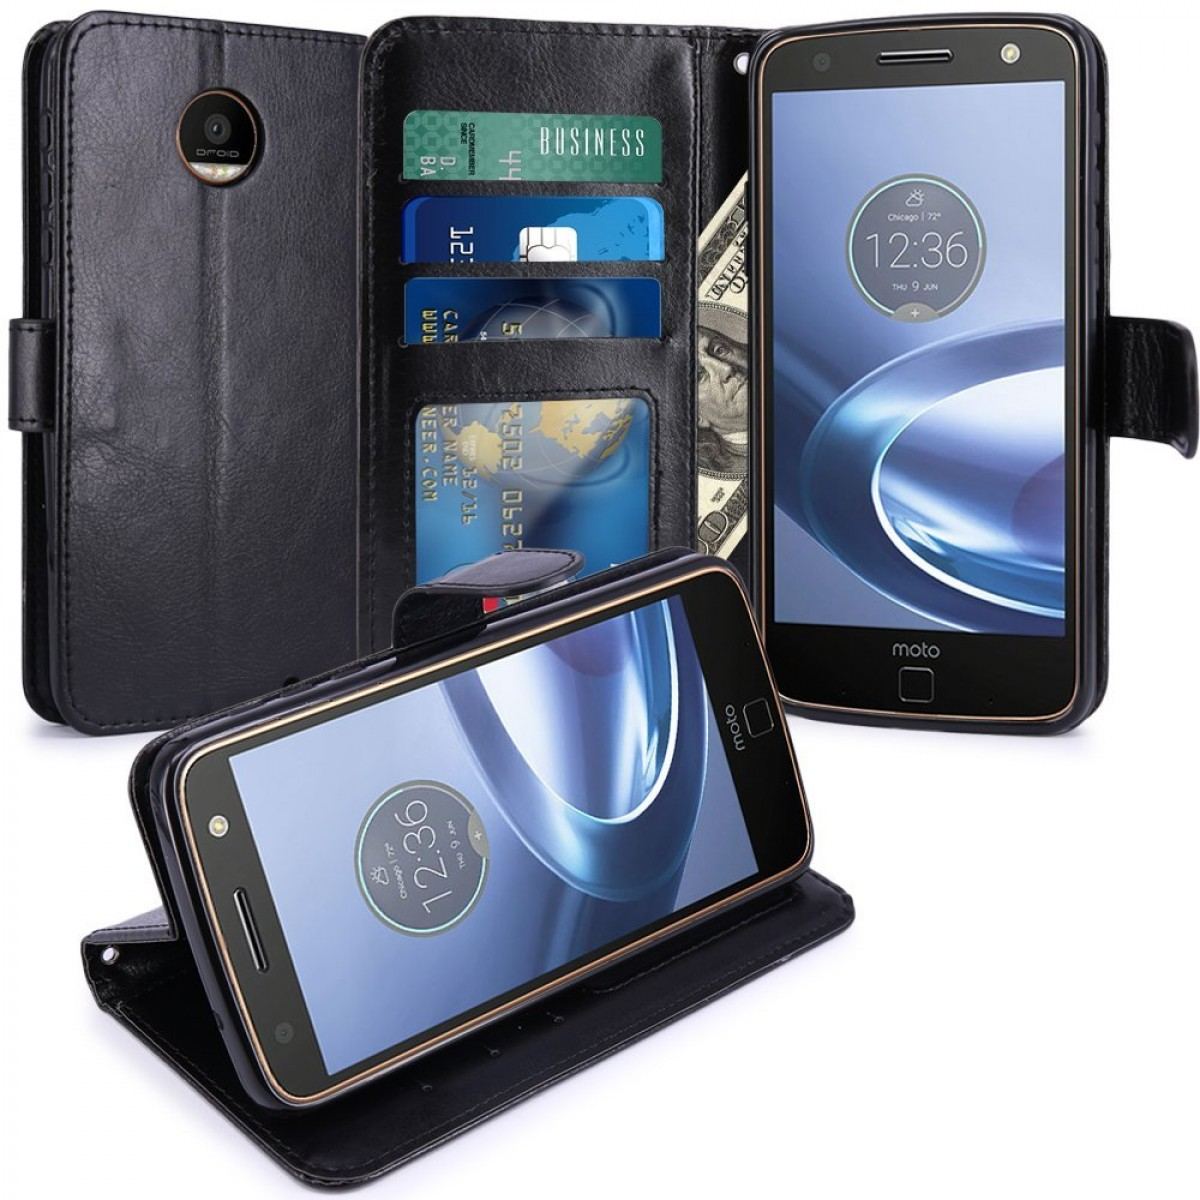 detailing 46125 6e900 Moto Z Force Case, LK Luxury PU Leather Wallet Flip Protective Case Cover  with Card Slots and Stand For Motorola Moto Z Force Droid (Black)